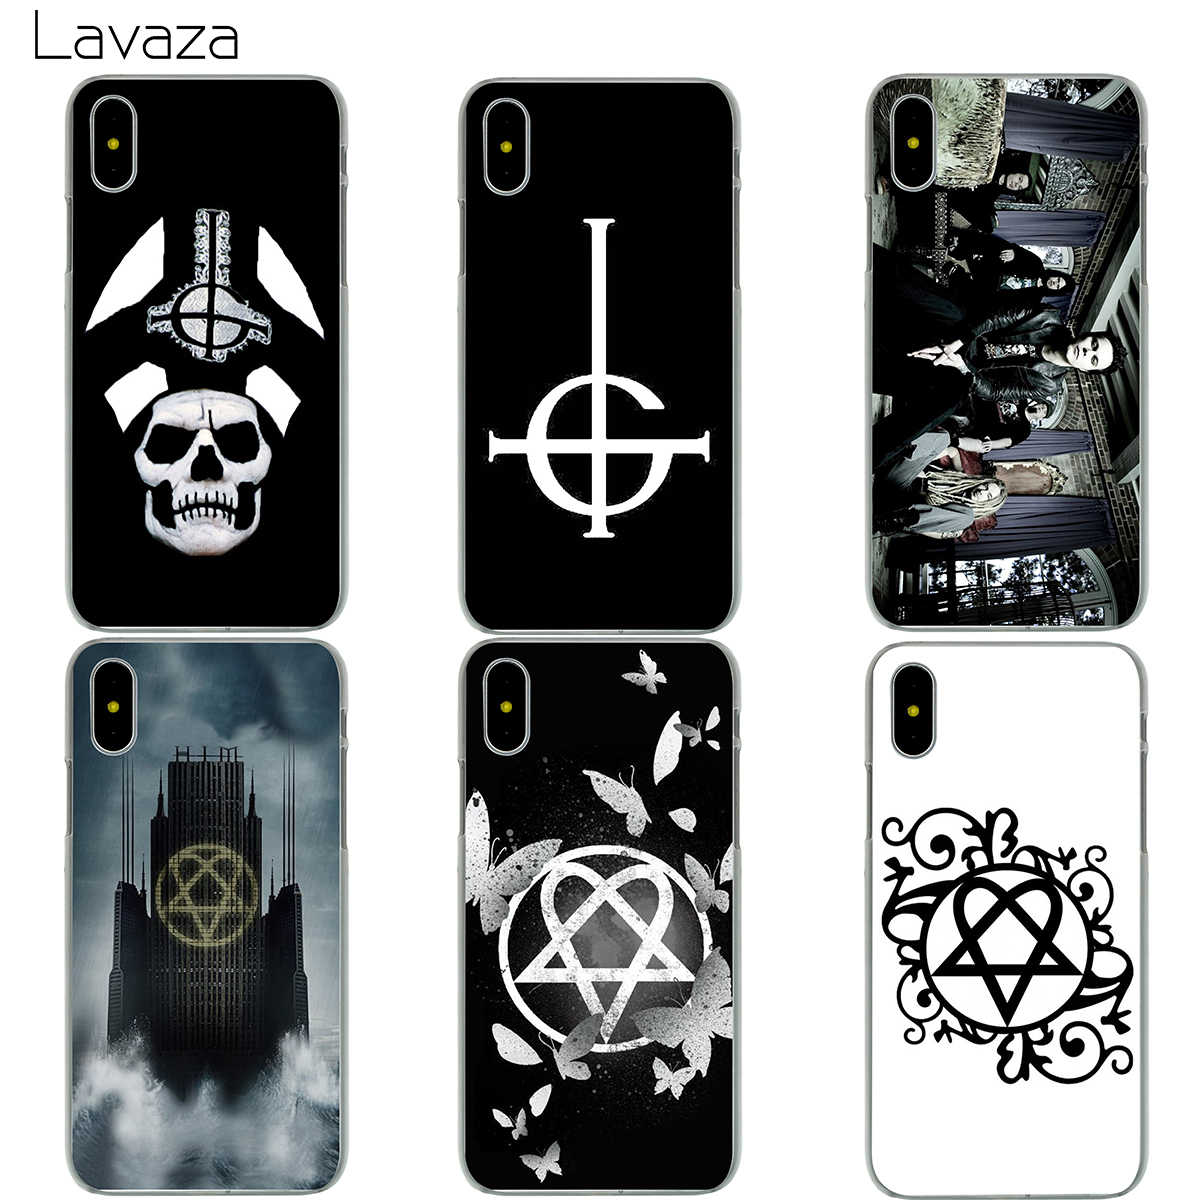 Lavaza Ghost HIM Case for iPhone X 8 7 6 6S Plus 5 5S SE